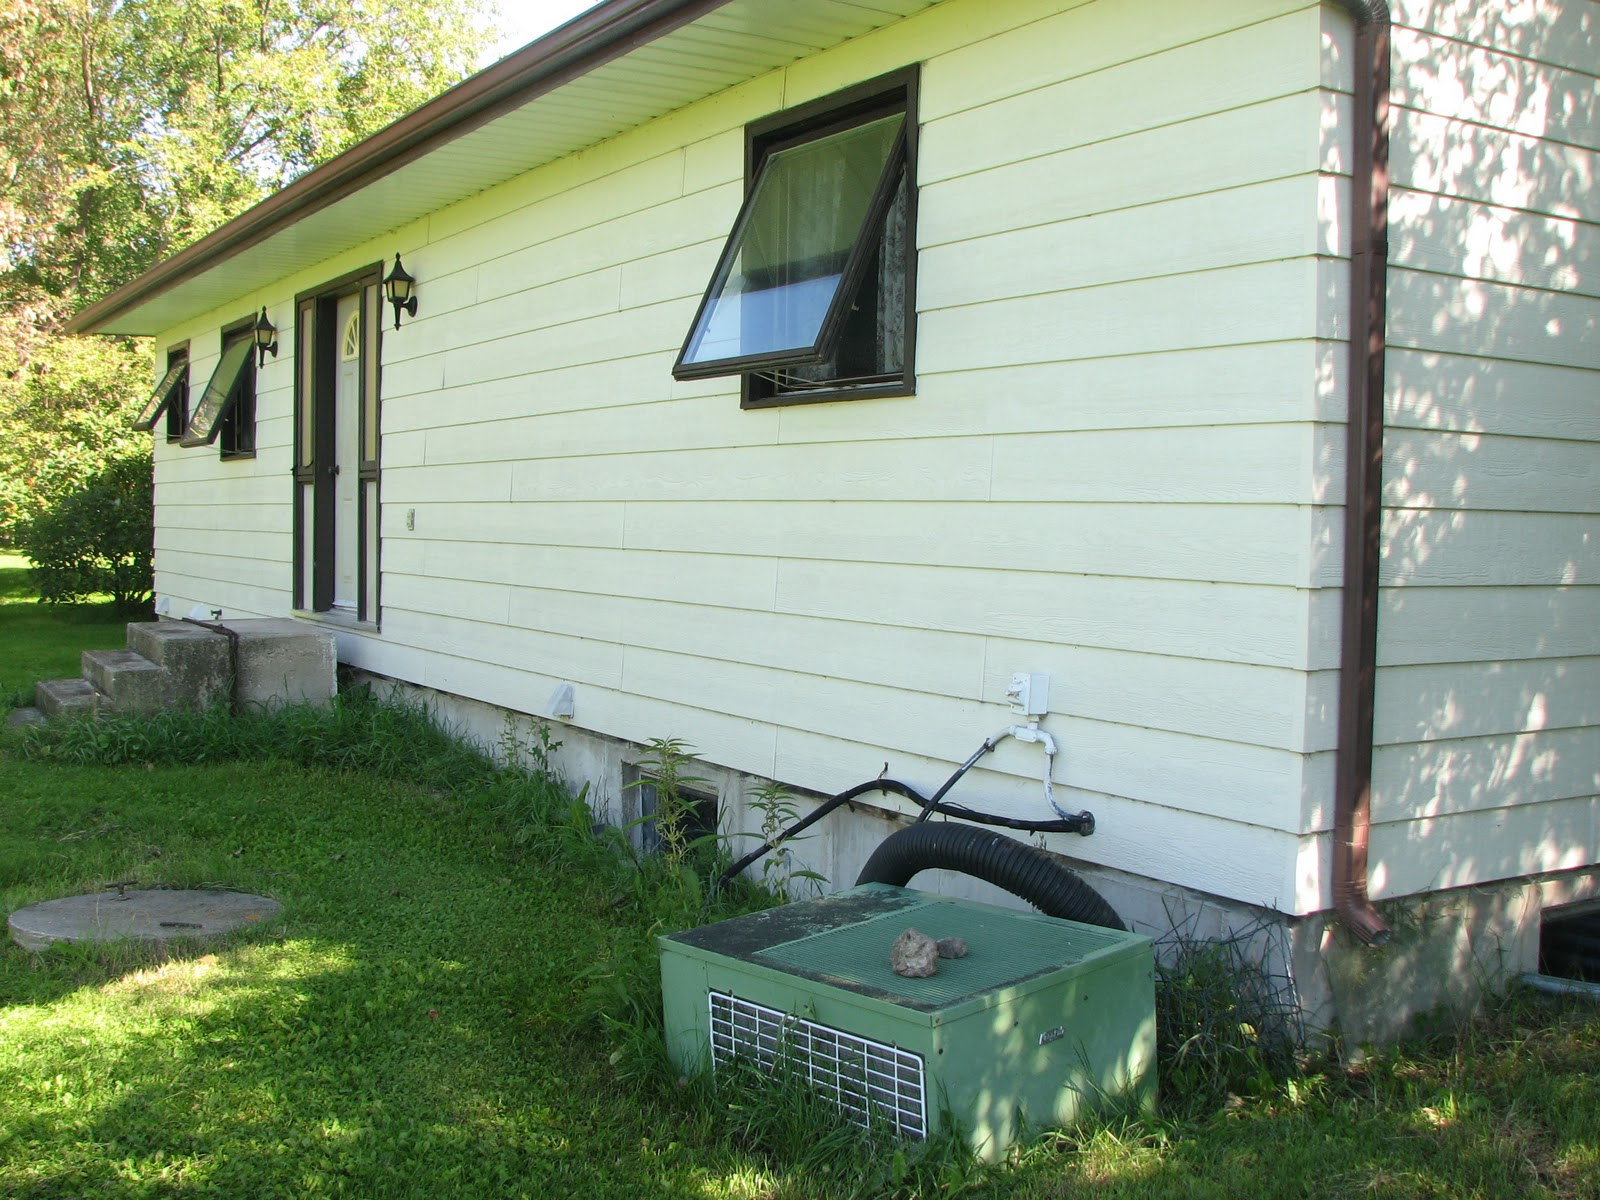 My Acreage: Basement Windows and Air Conditioning Unit #7F903B